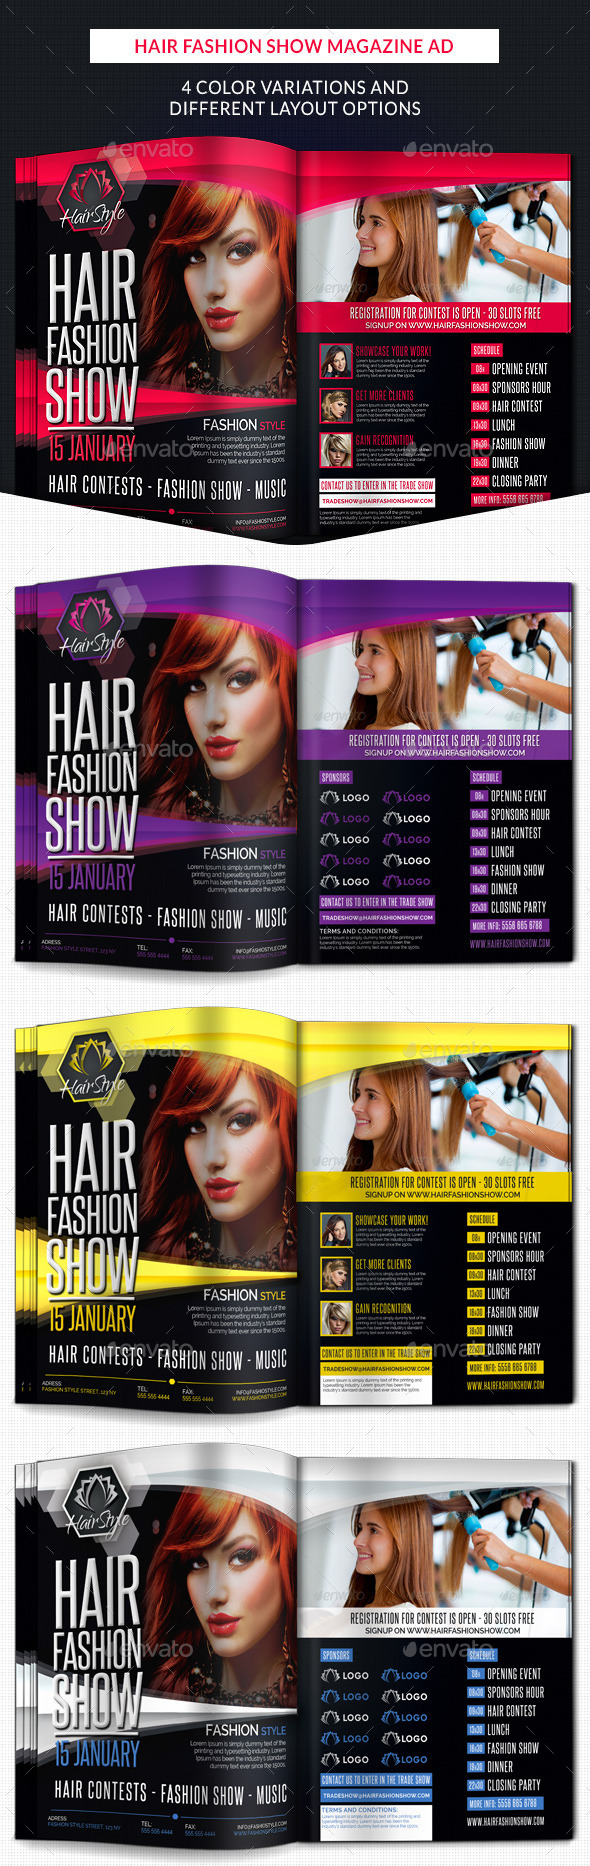 Hair Fashion Show Promotion Magazine Ad - Corporate Flyers